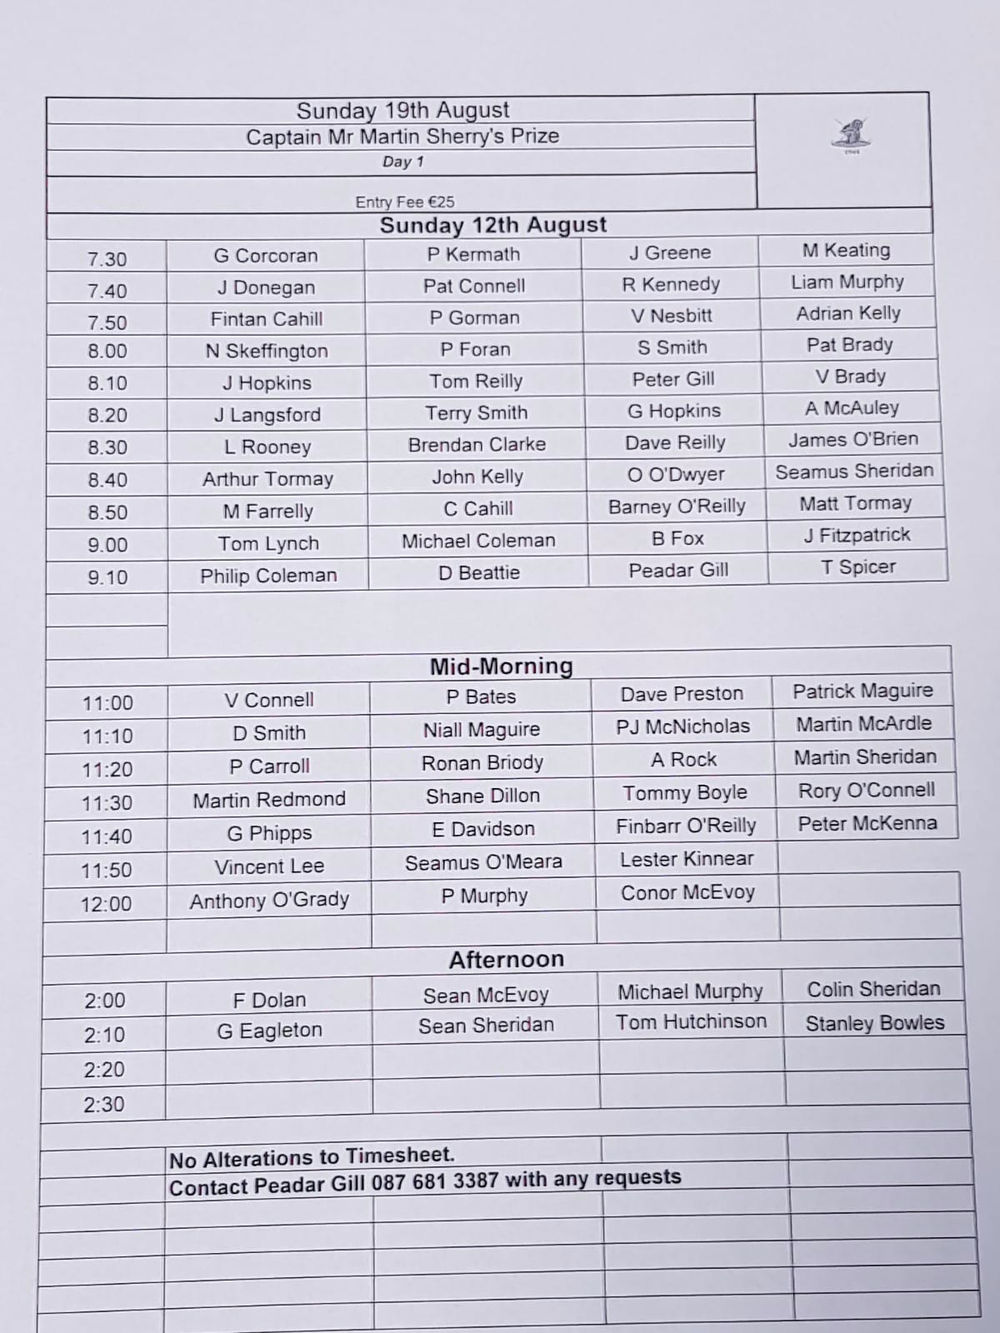 Captains Prize timesheet Day 1.png